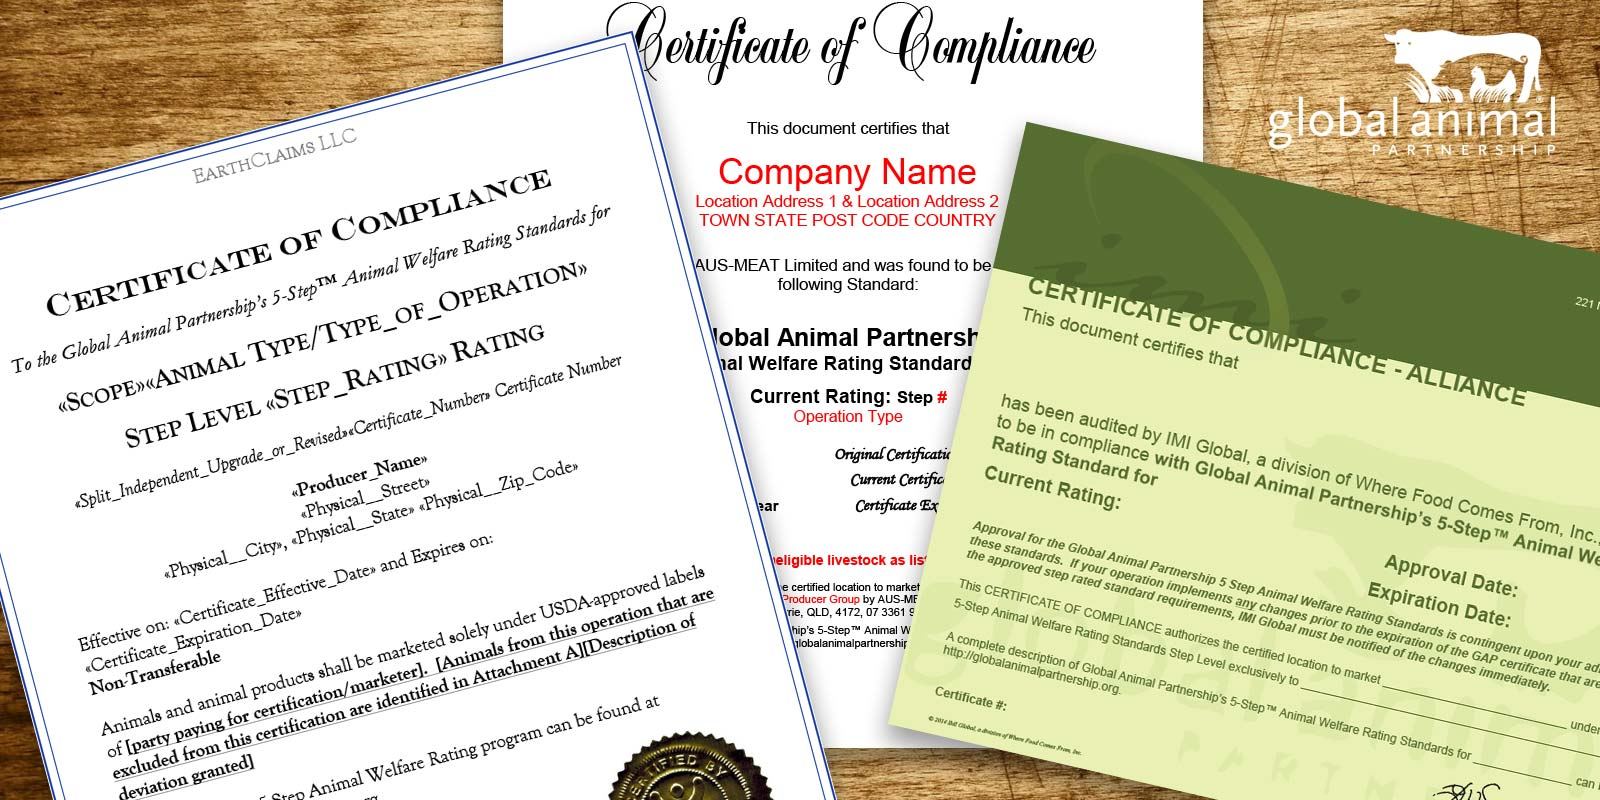 G.A.P. Certificate - Farm Animal Welfare Standards